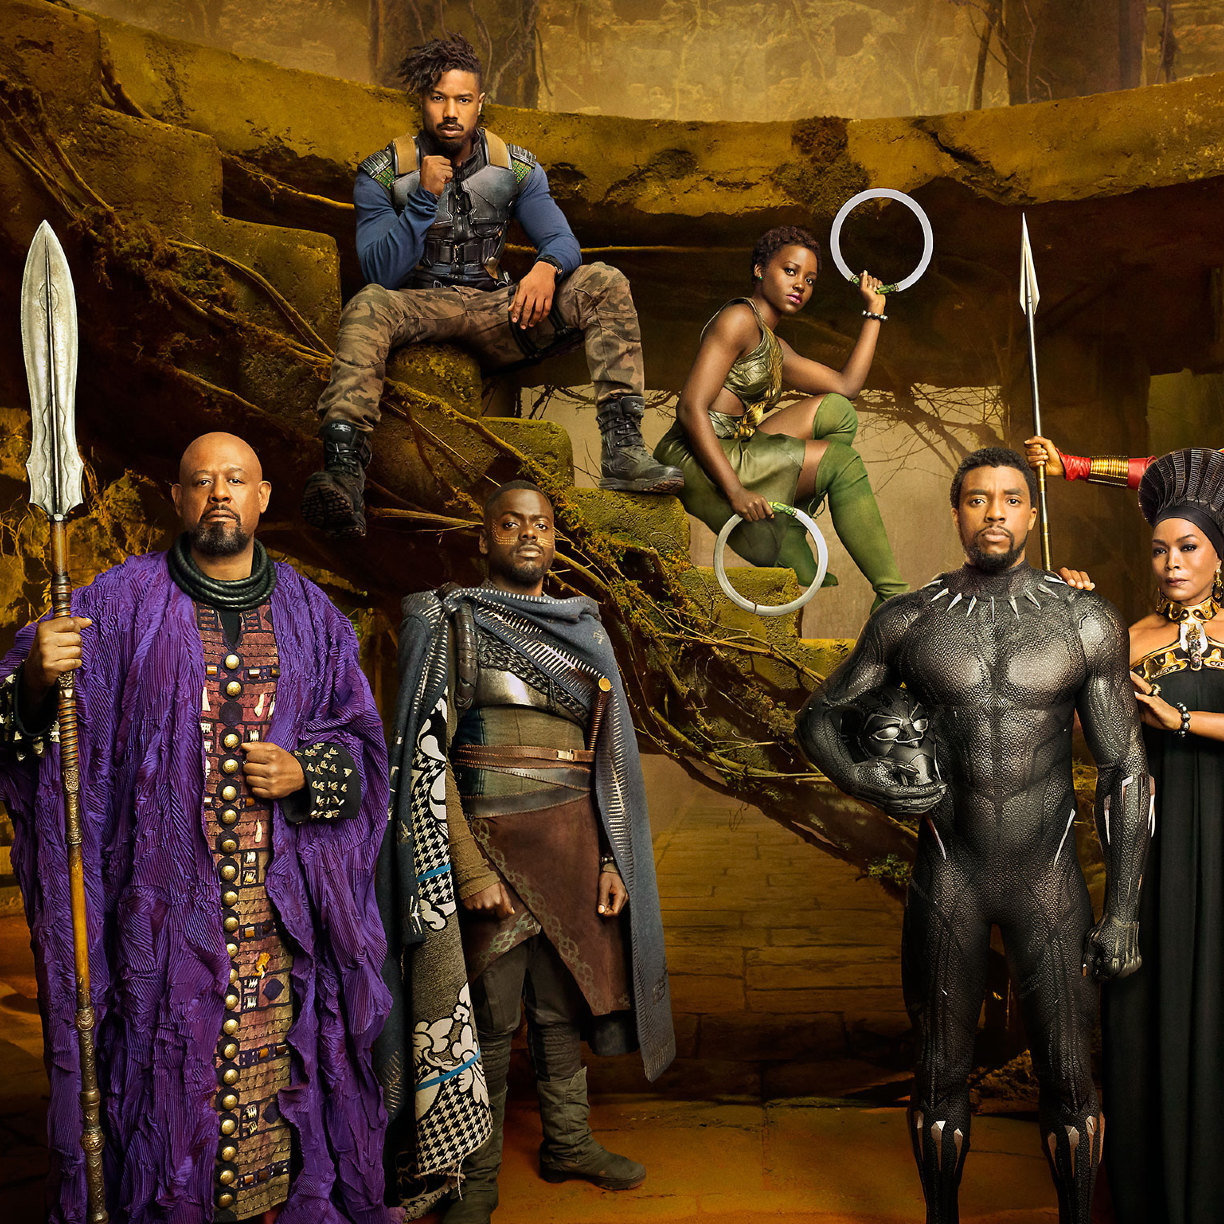 1224x1224 Black Panther Movie Cast 1224x1224 Resolution Wallpaper Hd Movies 4k Wallpapers Images Photos And Background